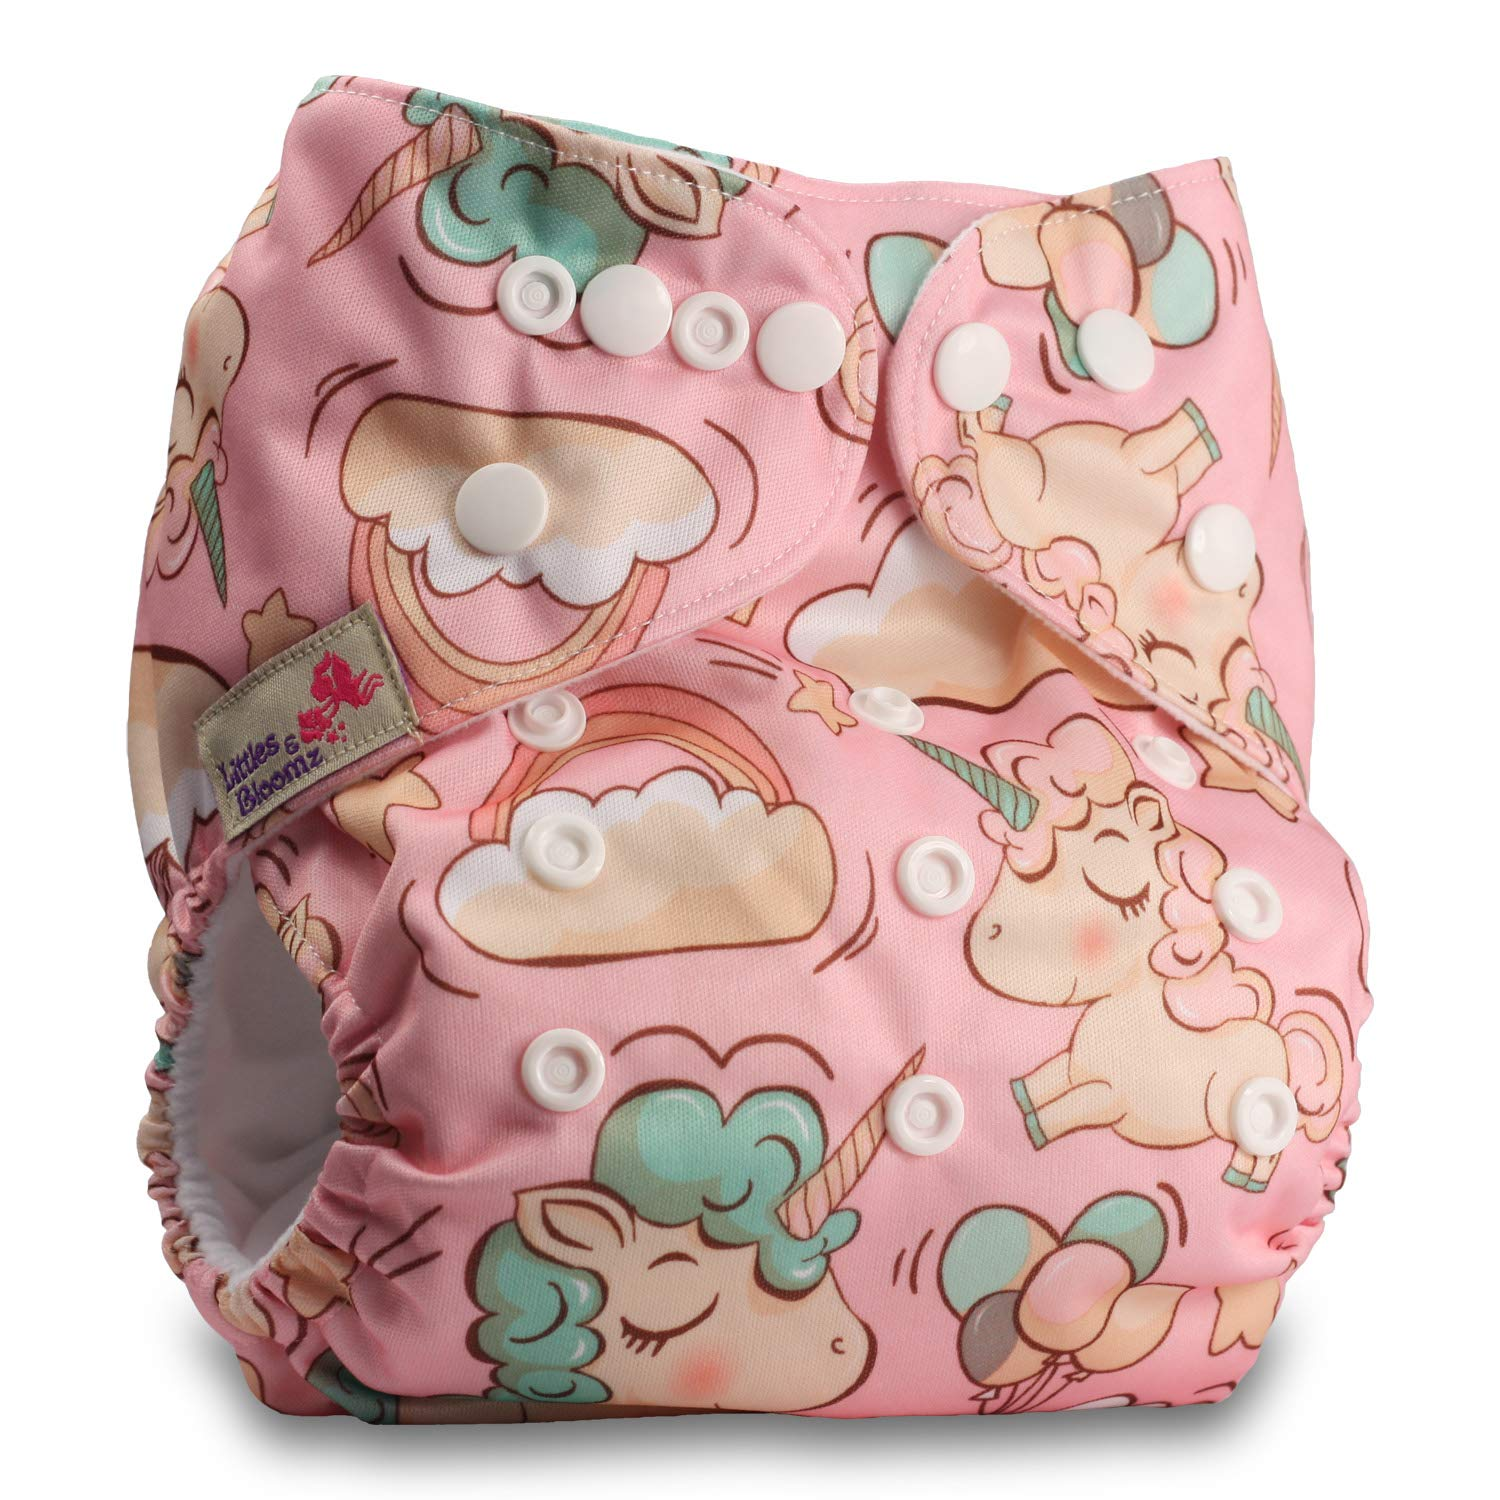 Littles & Bloomz, Reusable Pocket Cloth Nappy, Fastener: Popper, Set of 1, Pattern 5, With 2 Microfibre Inserts